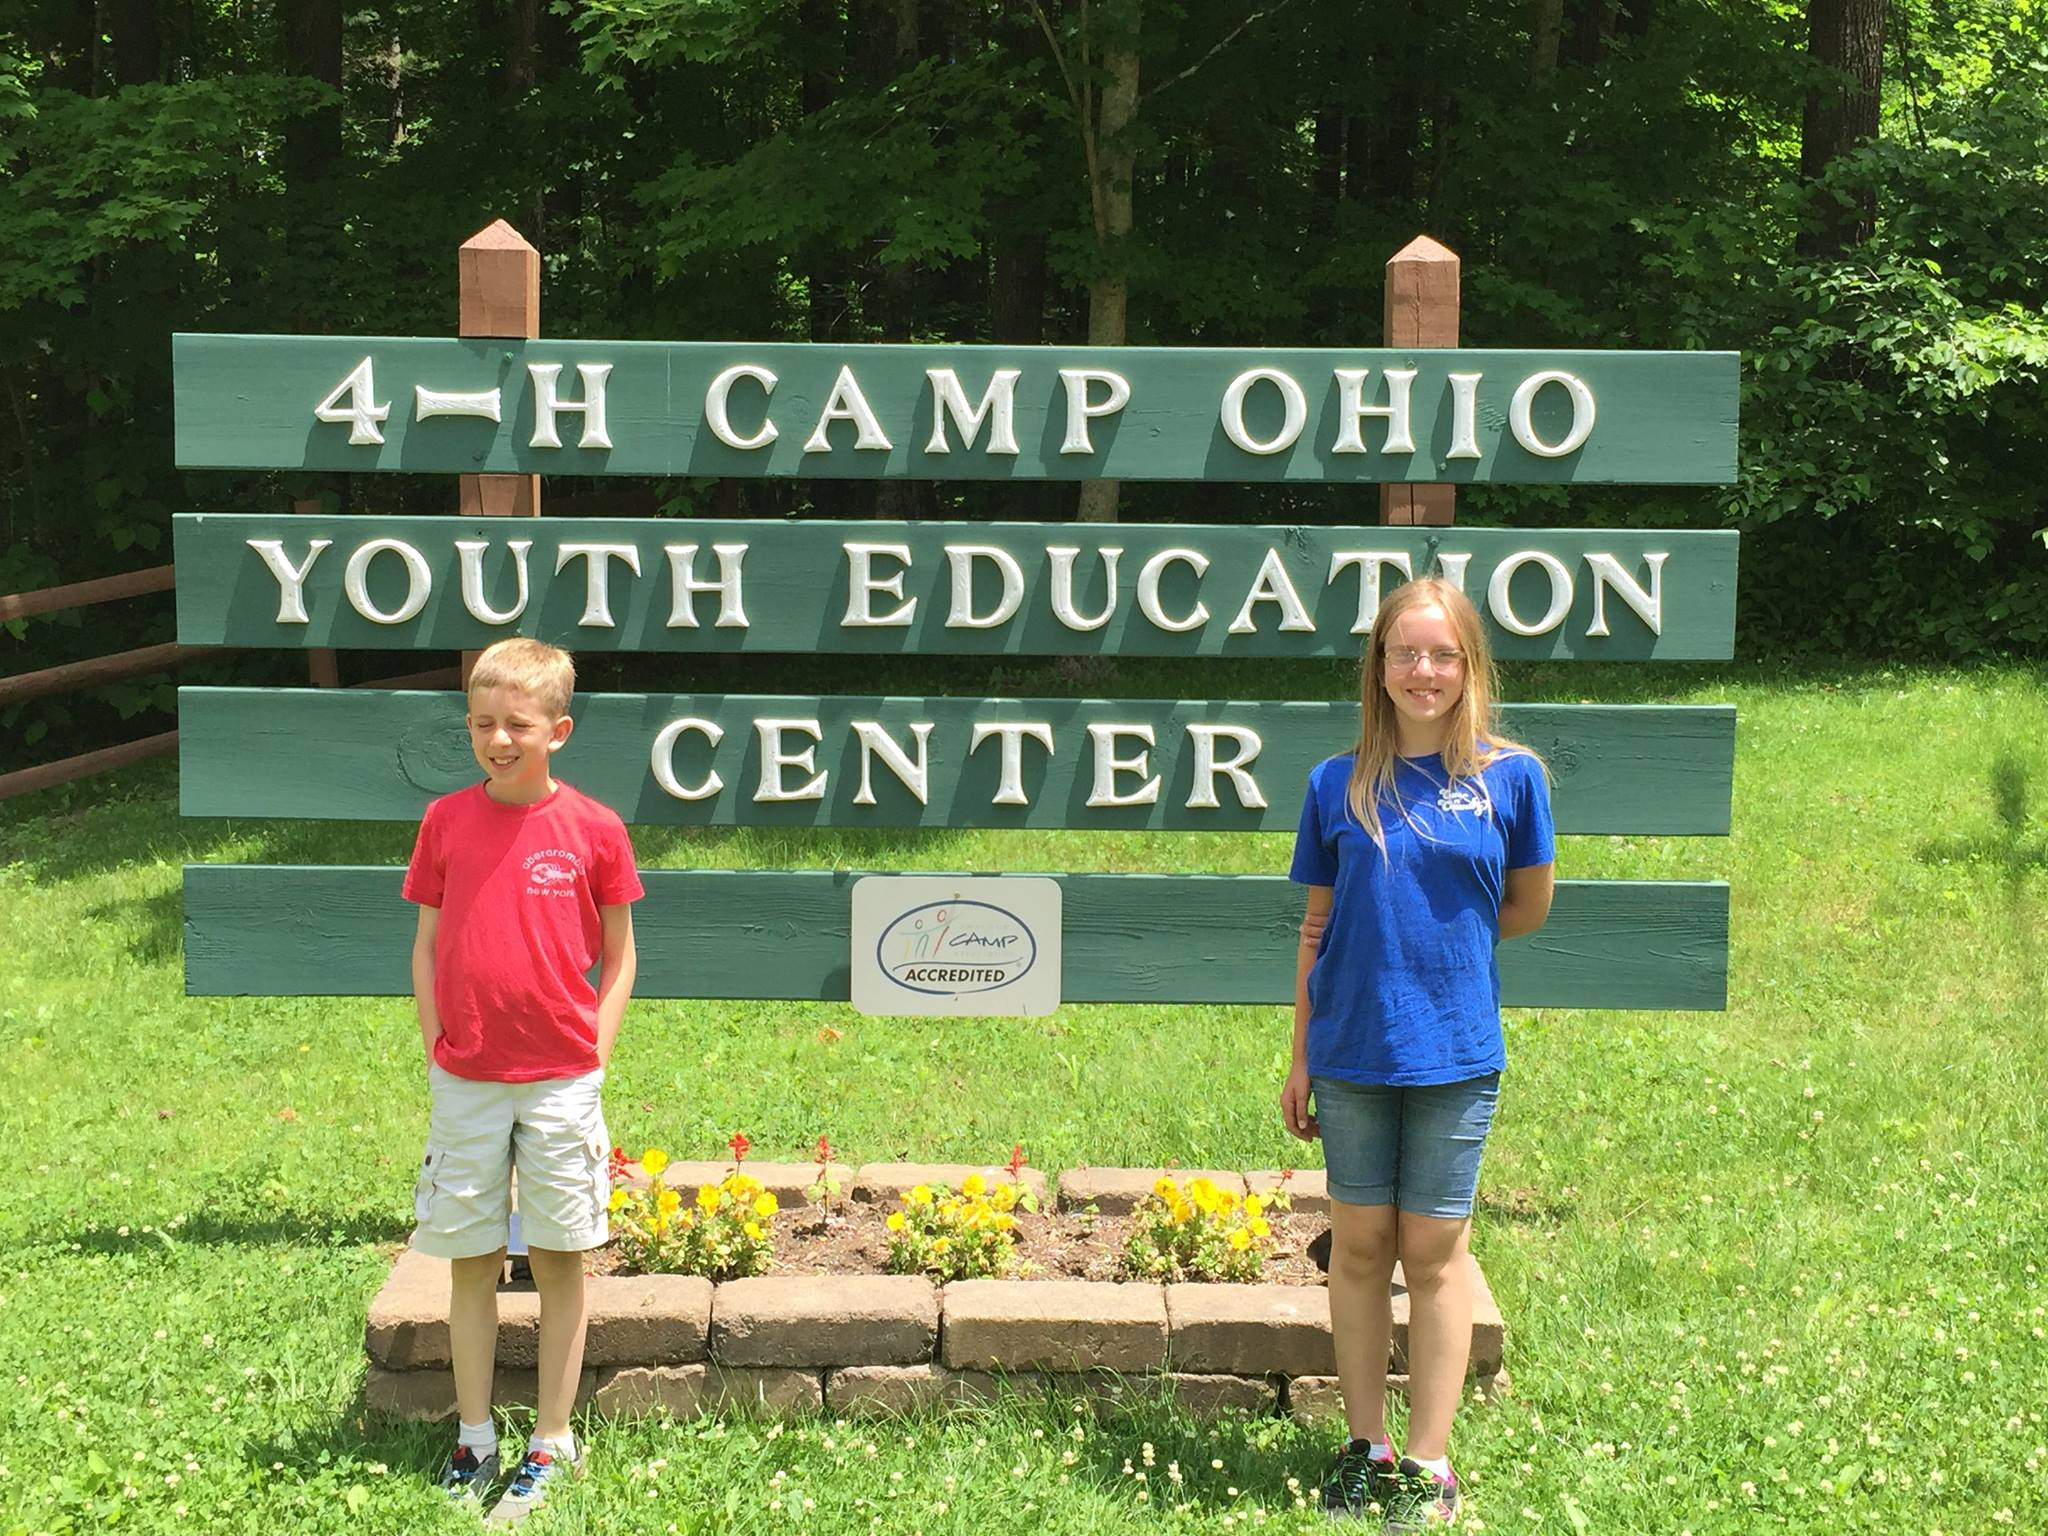 This year, for the first time, all three of my kidders will be heading off to 4-H Camp Ohio together! And you know what? They are excited and confident they can happily survive for a week without mom and dad!